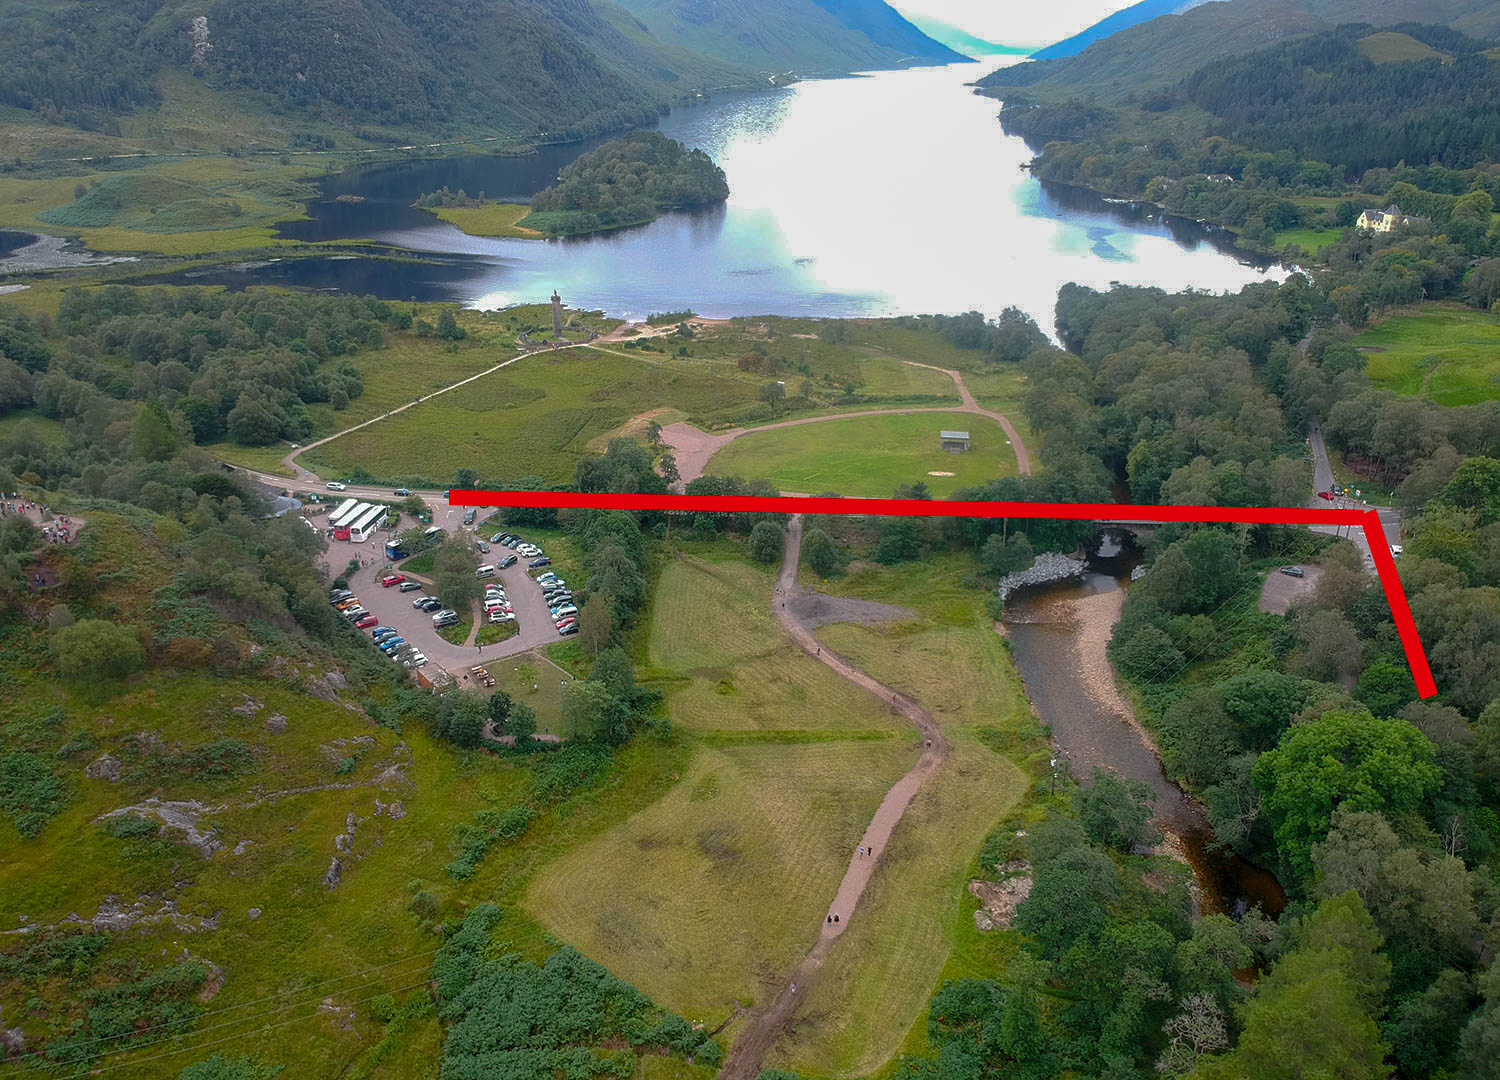 Map-to-Glenfinnan-Viaduct-from-Visitor-Centre-Car-Park.